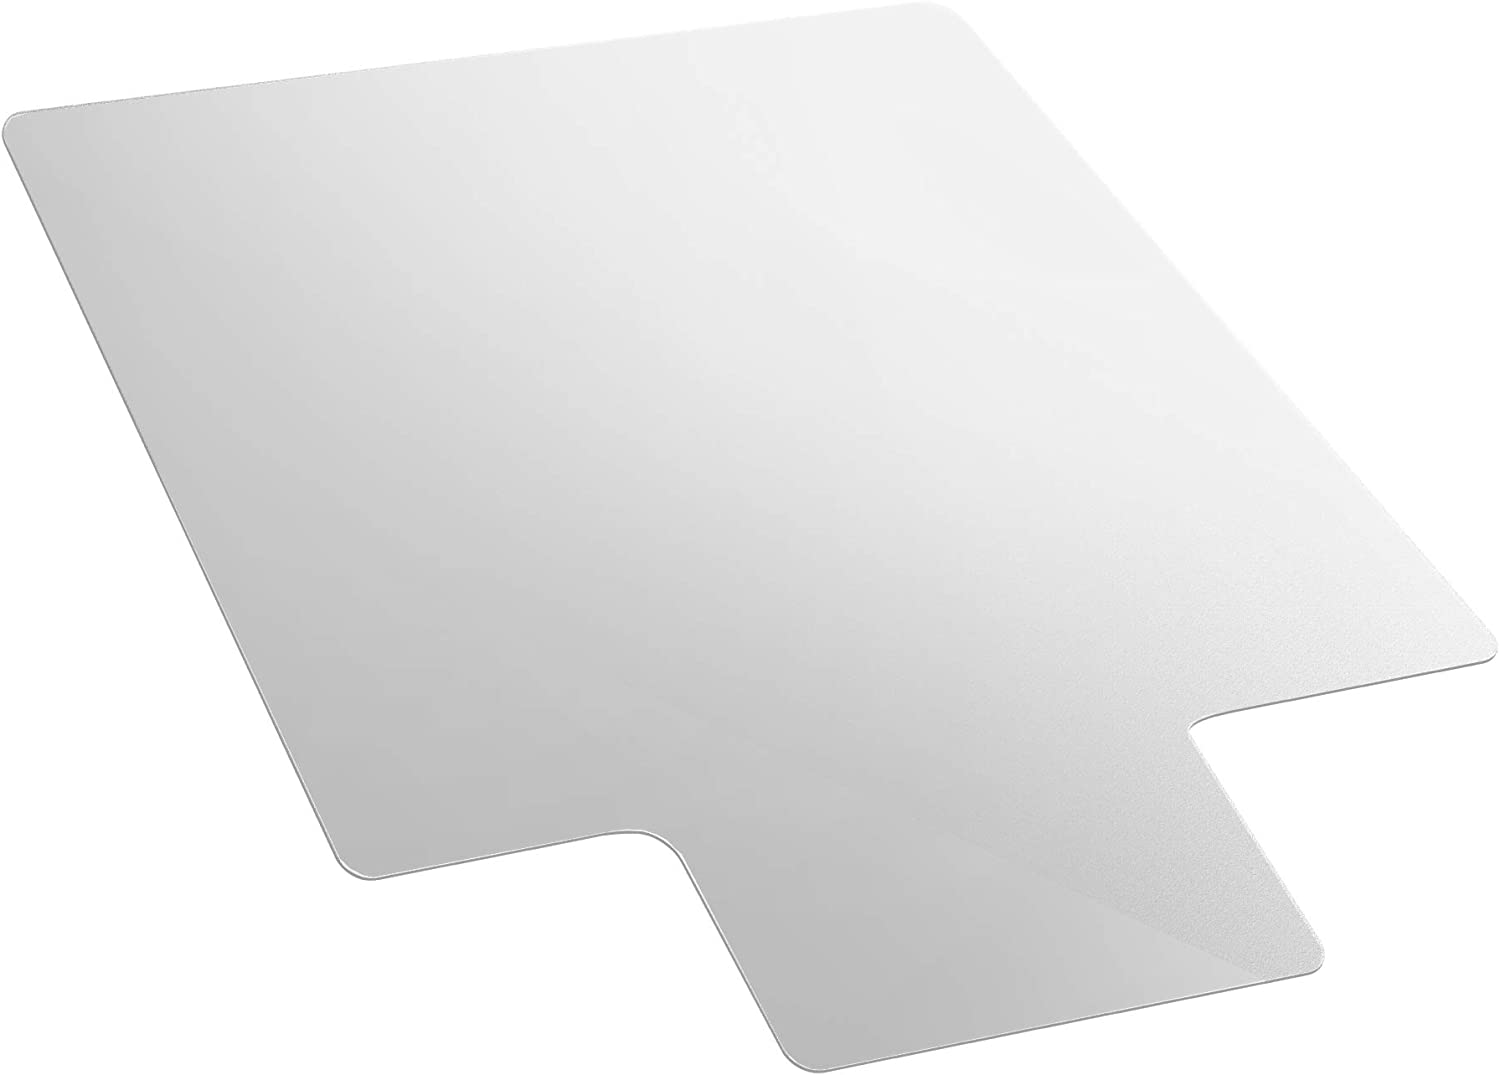 "AmazonBasics Polycarbonate Chair Mat with Lip for Hard Floors - 47"" x 53"""